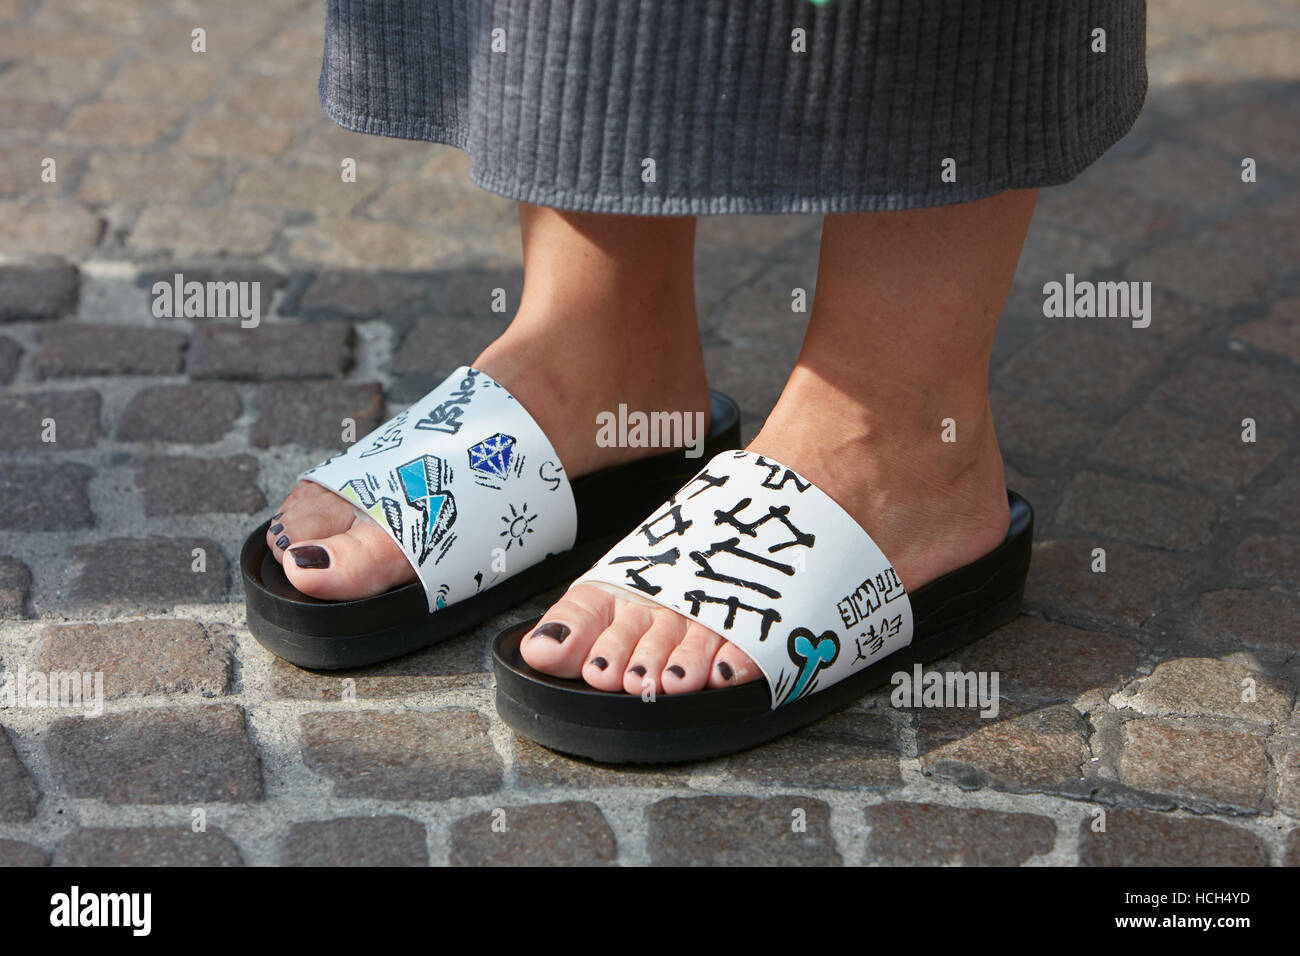 Woman with open sleepers before Giamba fashion show, Milan Fashion Week street style on September 23, 2016 in Milan. - Stock Image